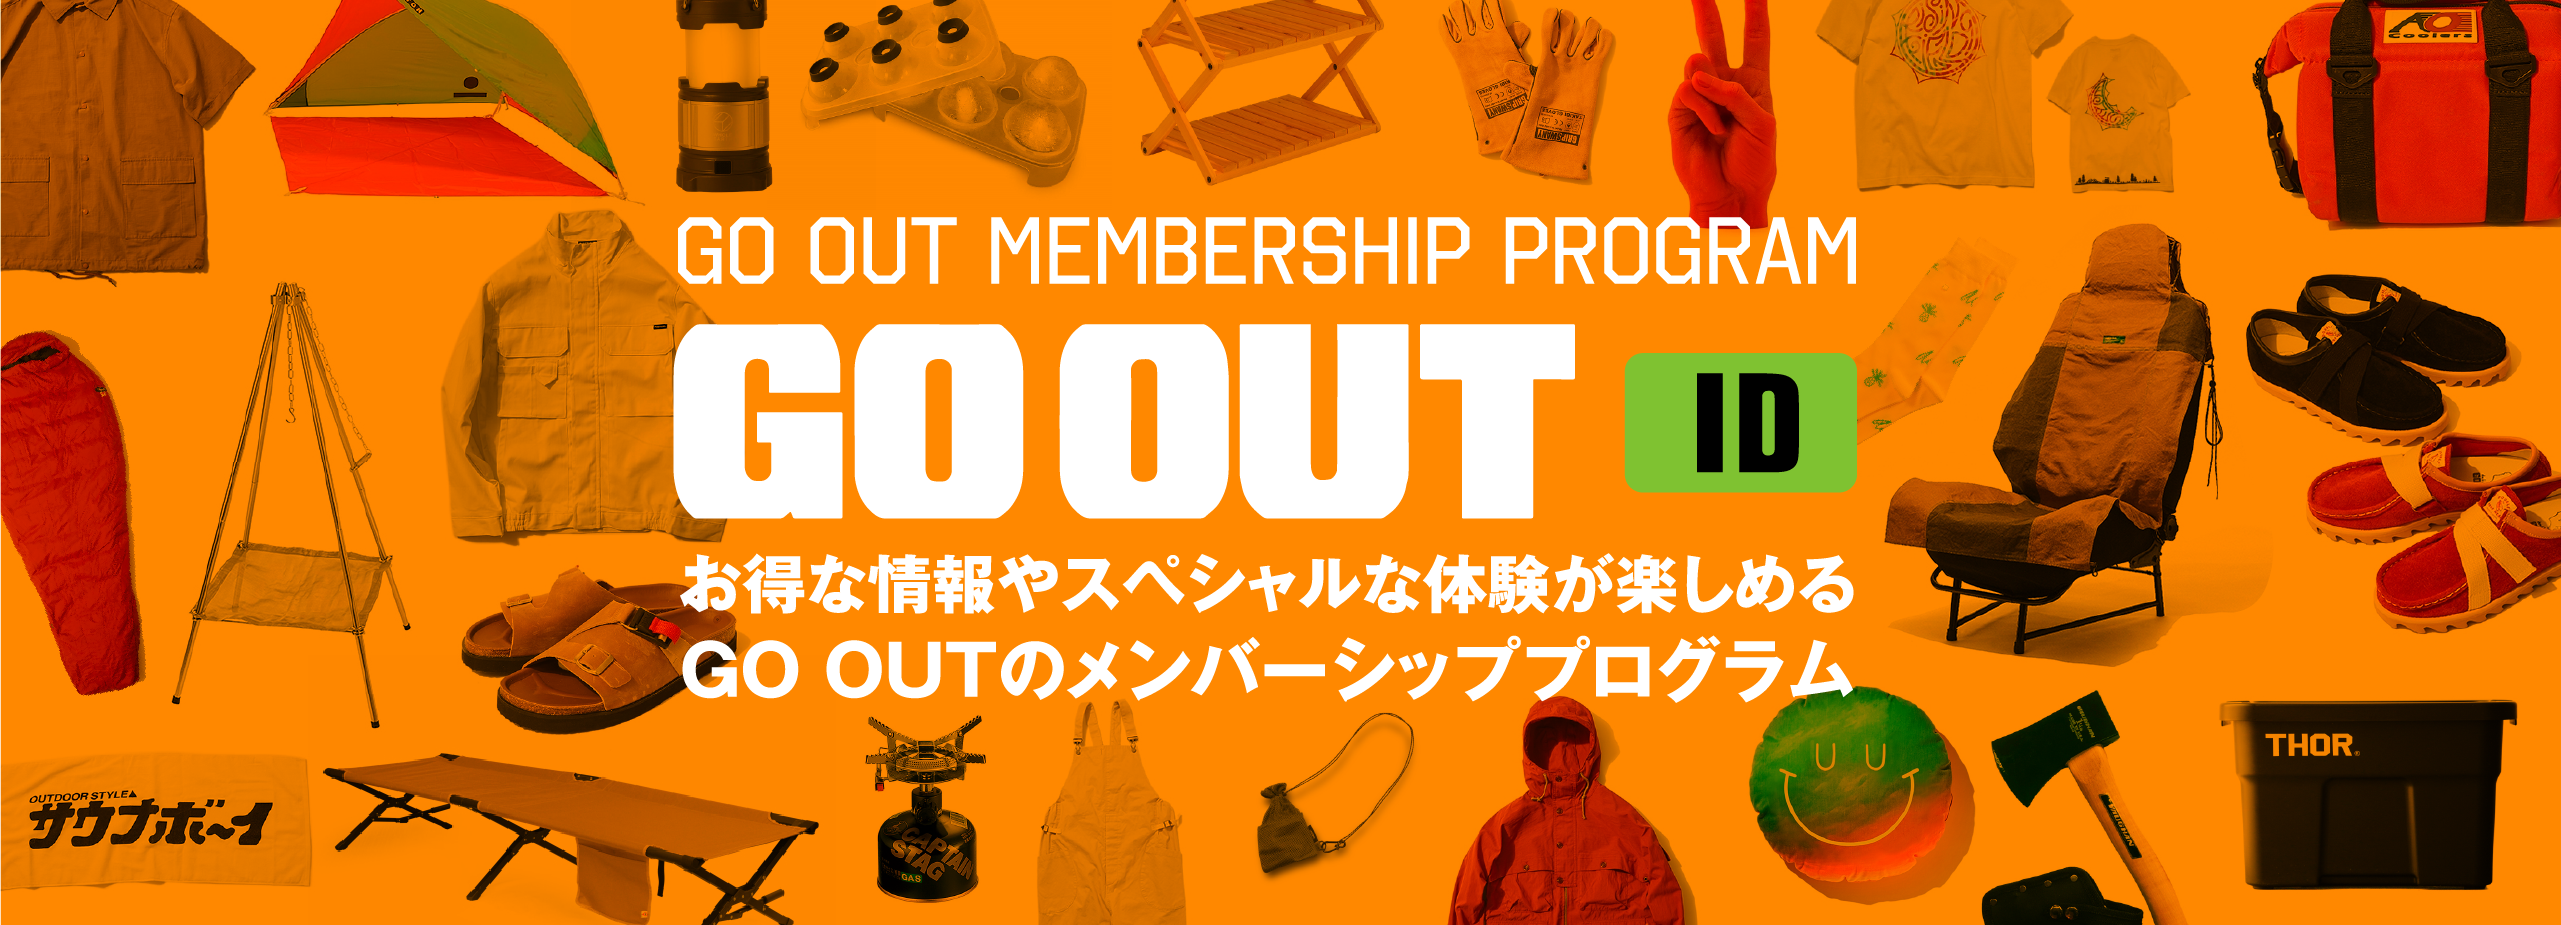 MEMBERSHIP RENEWWAL GO OUTの公式通販サイト「GO OUT Online」の会員システムがリニューアル!